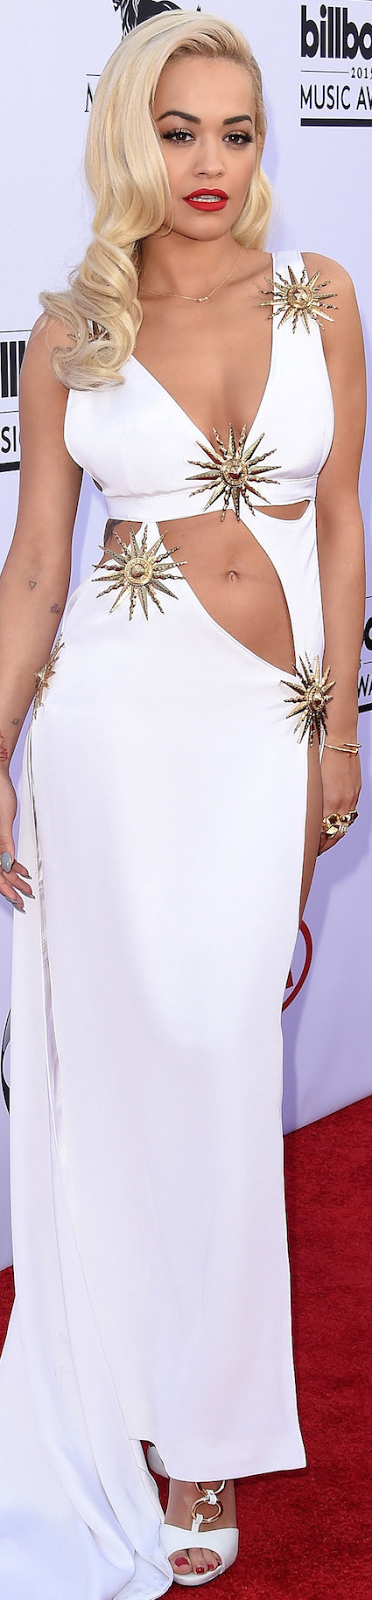 Rita Ora 2015 Billboard Awards Red Carpet